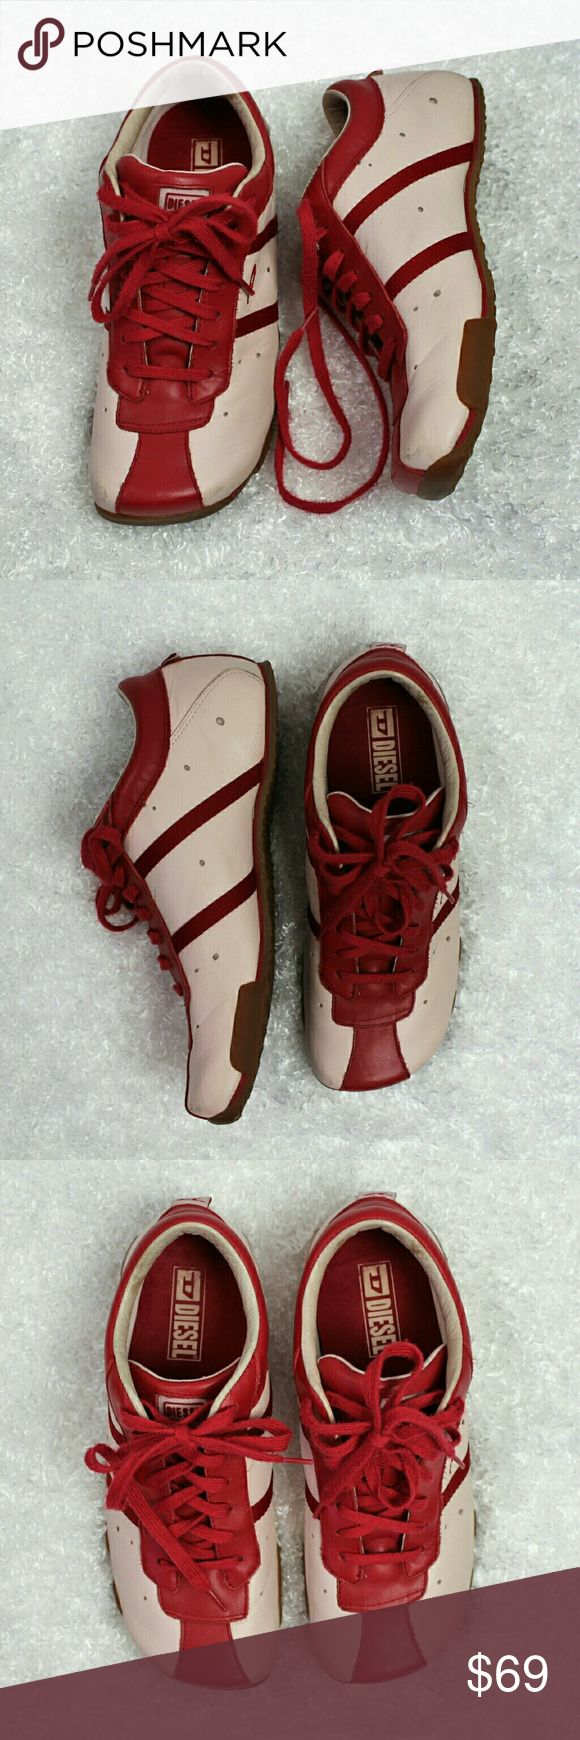 Diesel Evelyn Red  & Pink Sneakers Red and light pink leather sneakers . Have some wear shown in last pic. Size 9 Diesel Shoes Sneakers